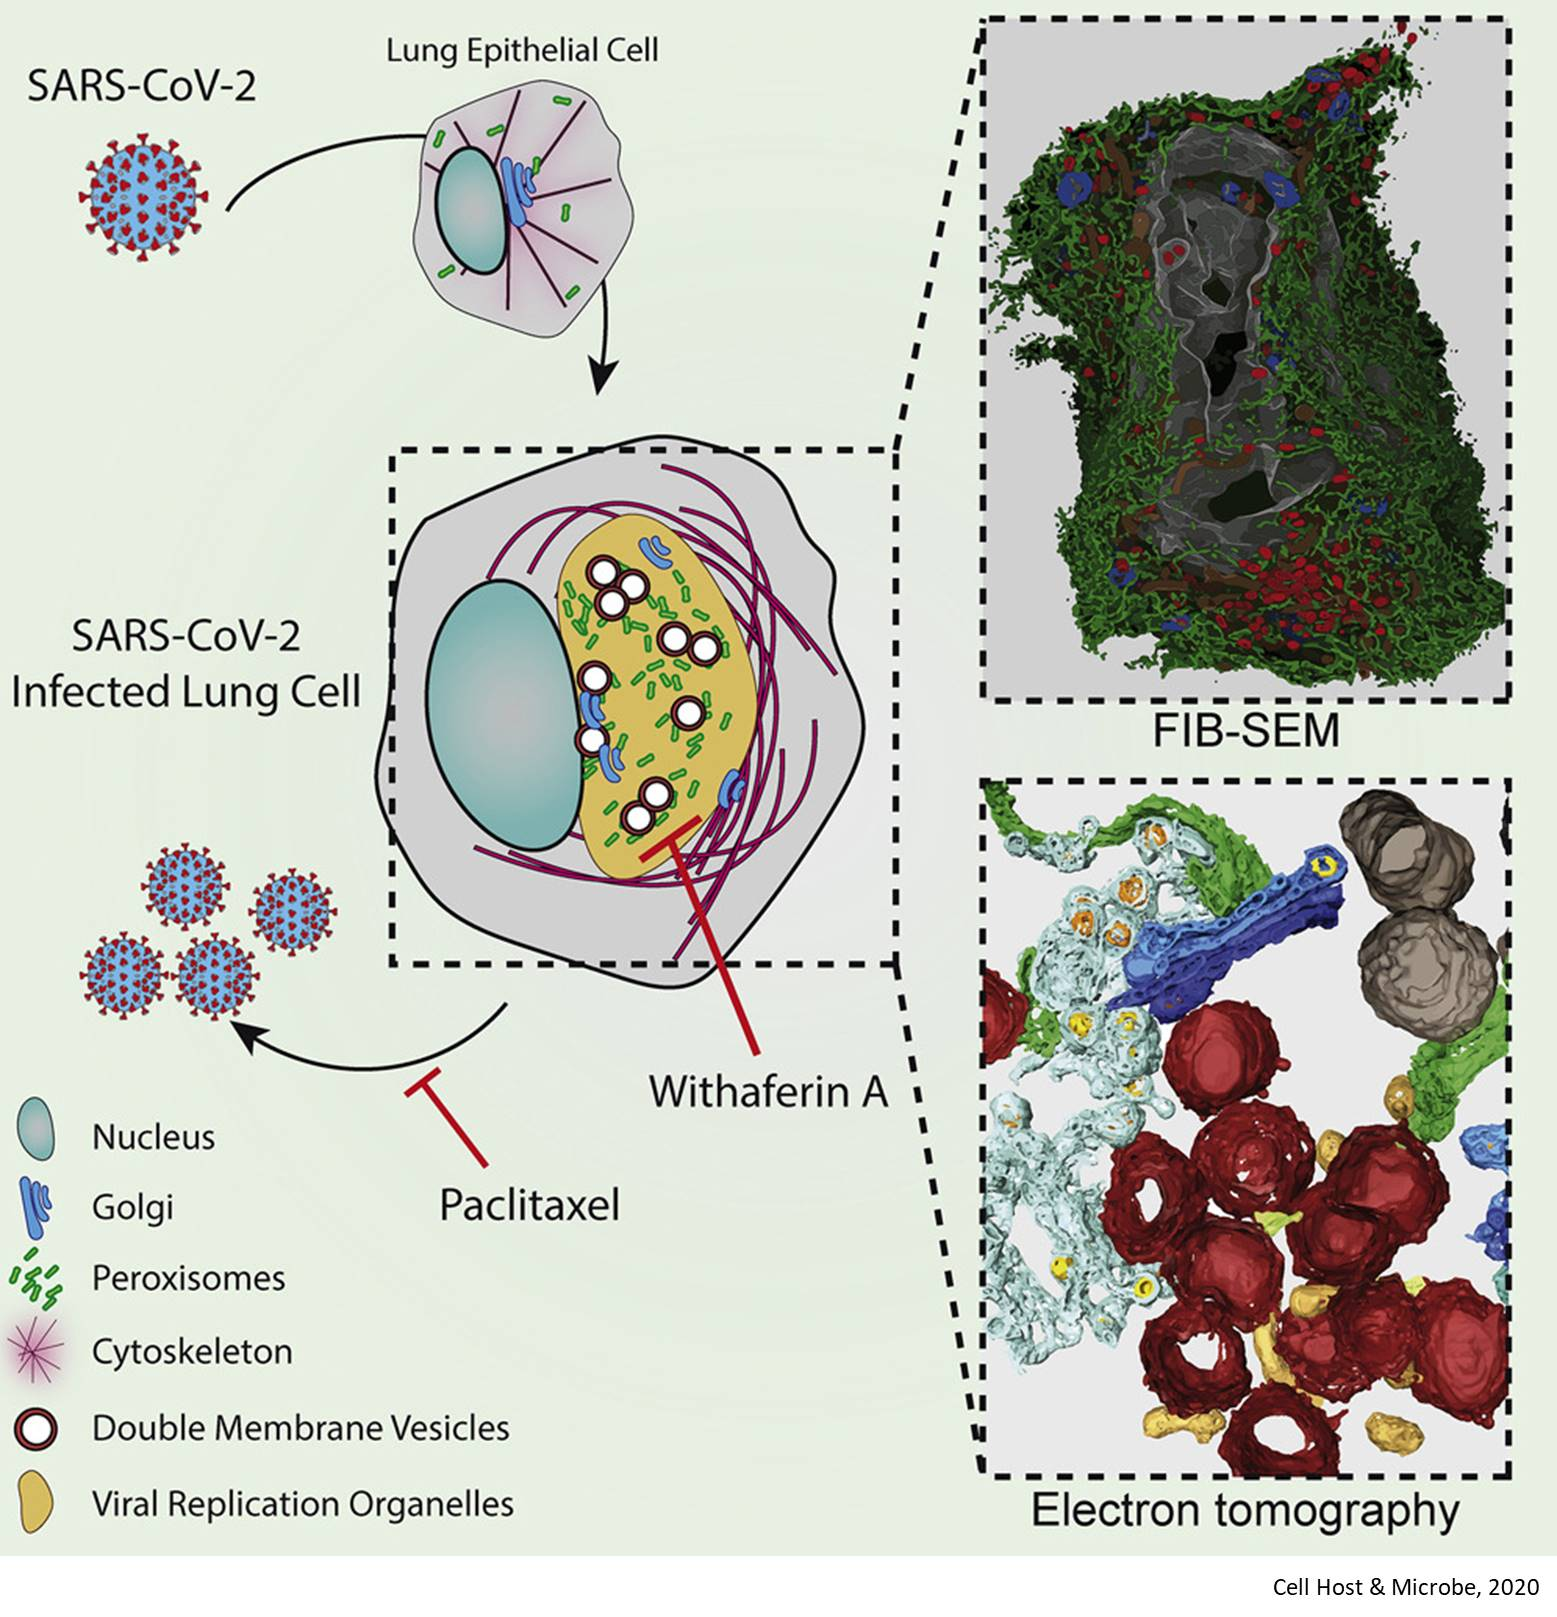 Mini replication compartments in the cells infected with SARS-CoV-2